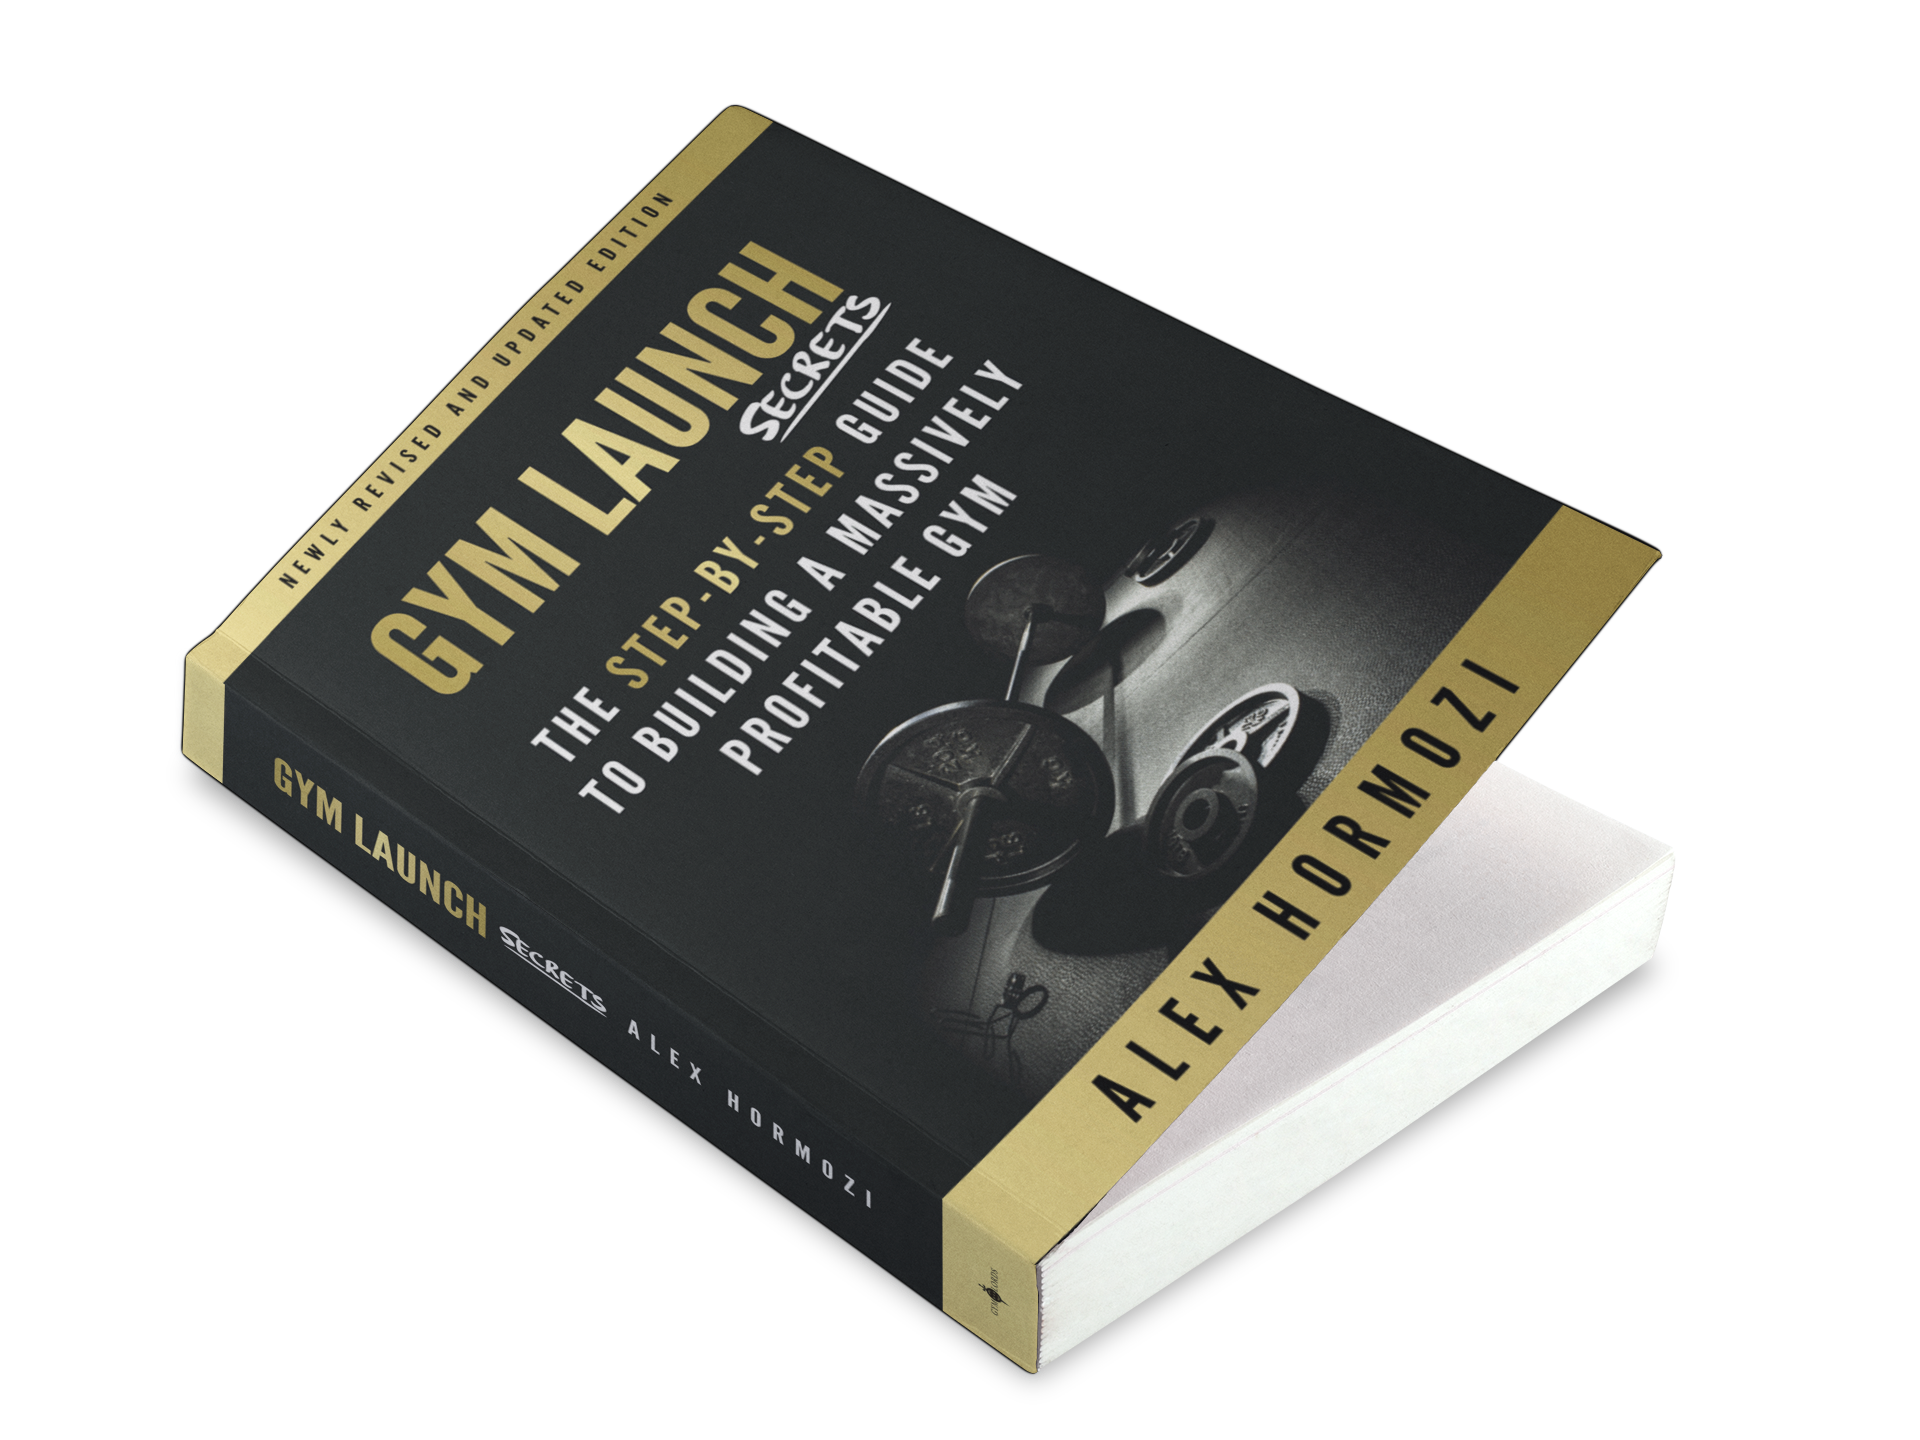 Gym Launch Secrets Book - When Alex Hormozi decided to release is first book, he wanted a cover that was bold and strong as him. I kept the cover design on brand by incorporating the signature black and gold palette. Once the book was done, I designed a series of Facebook ads that were sure to capture attention and drive sales.